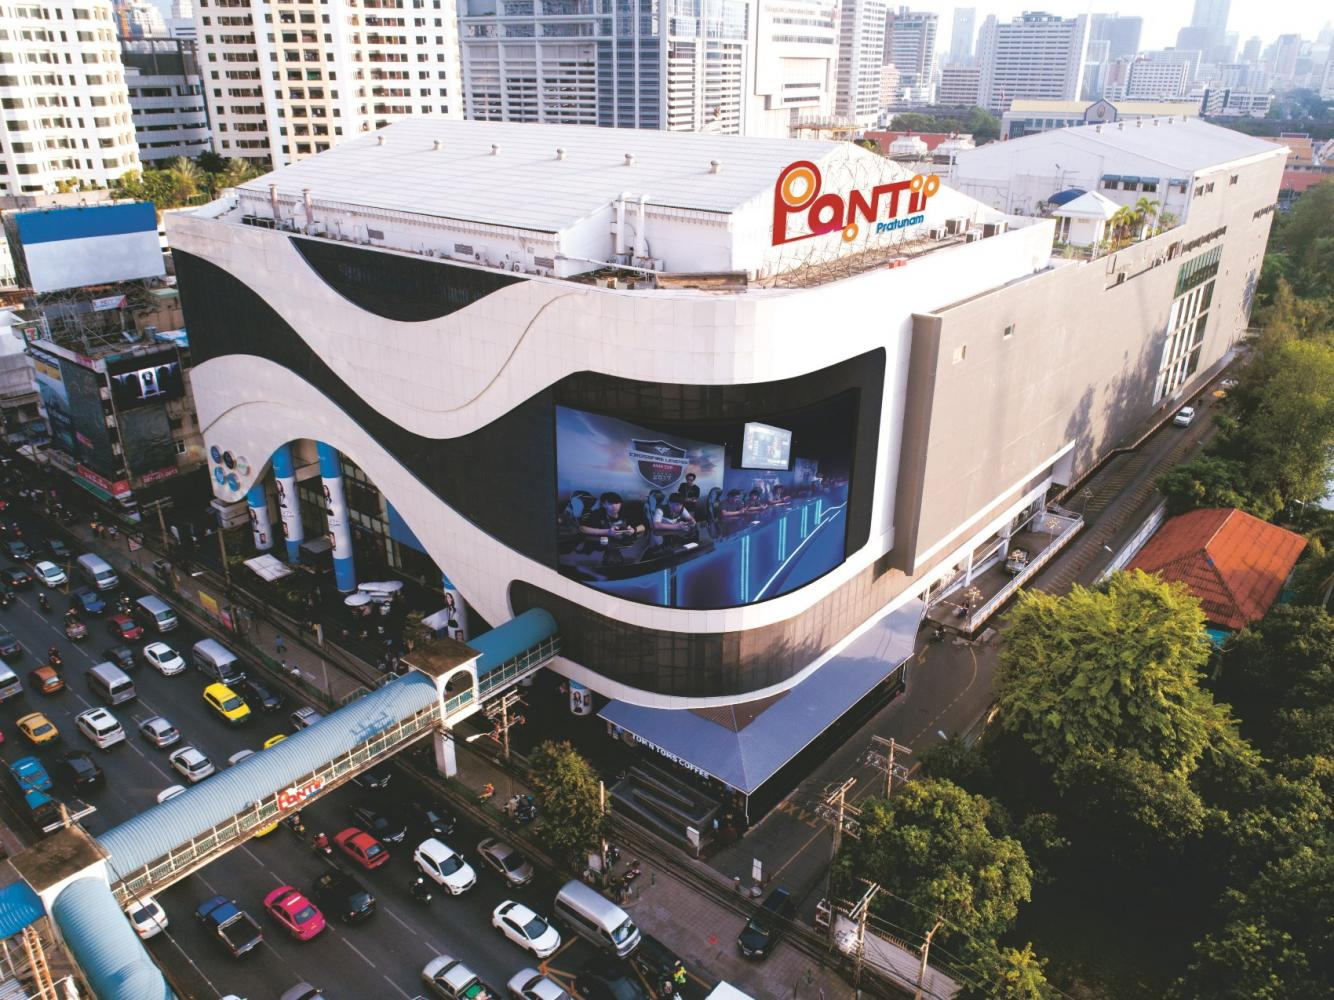 Redevelopment planned for Pantip Plaza